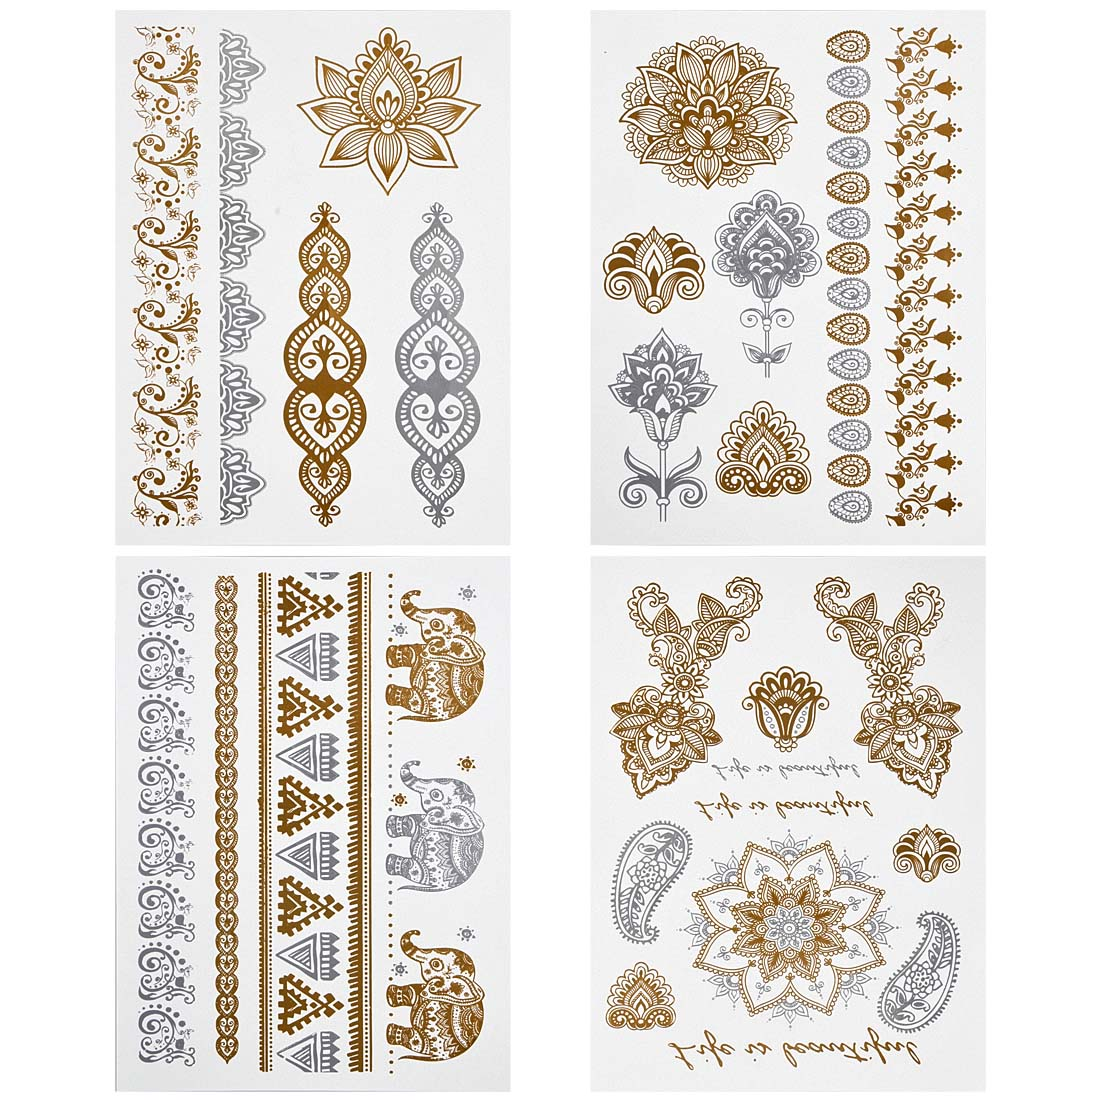 BMC Gorgeous 4pc Mixed Metallic Assortment of Temporary Water Transfer Tattoos